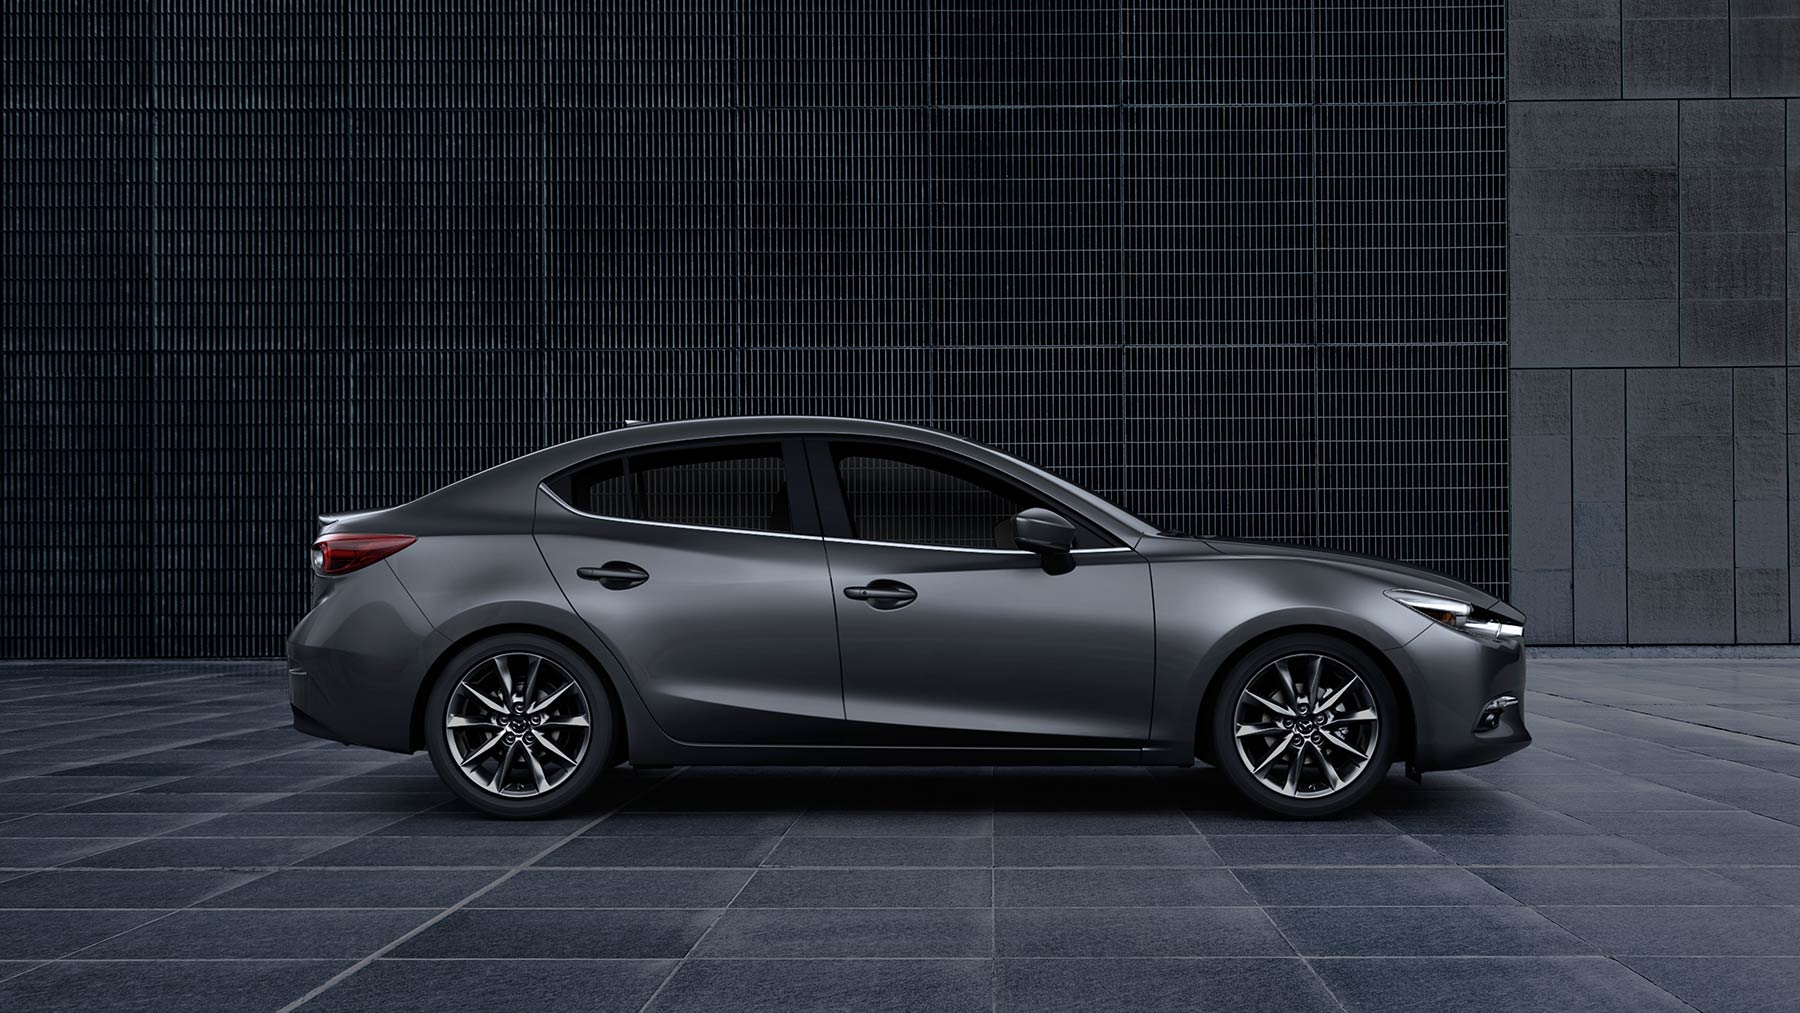 2018 Mazda3 Financing near Fairfield, CA